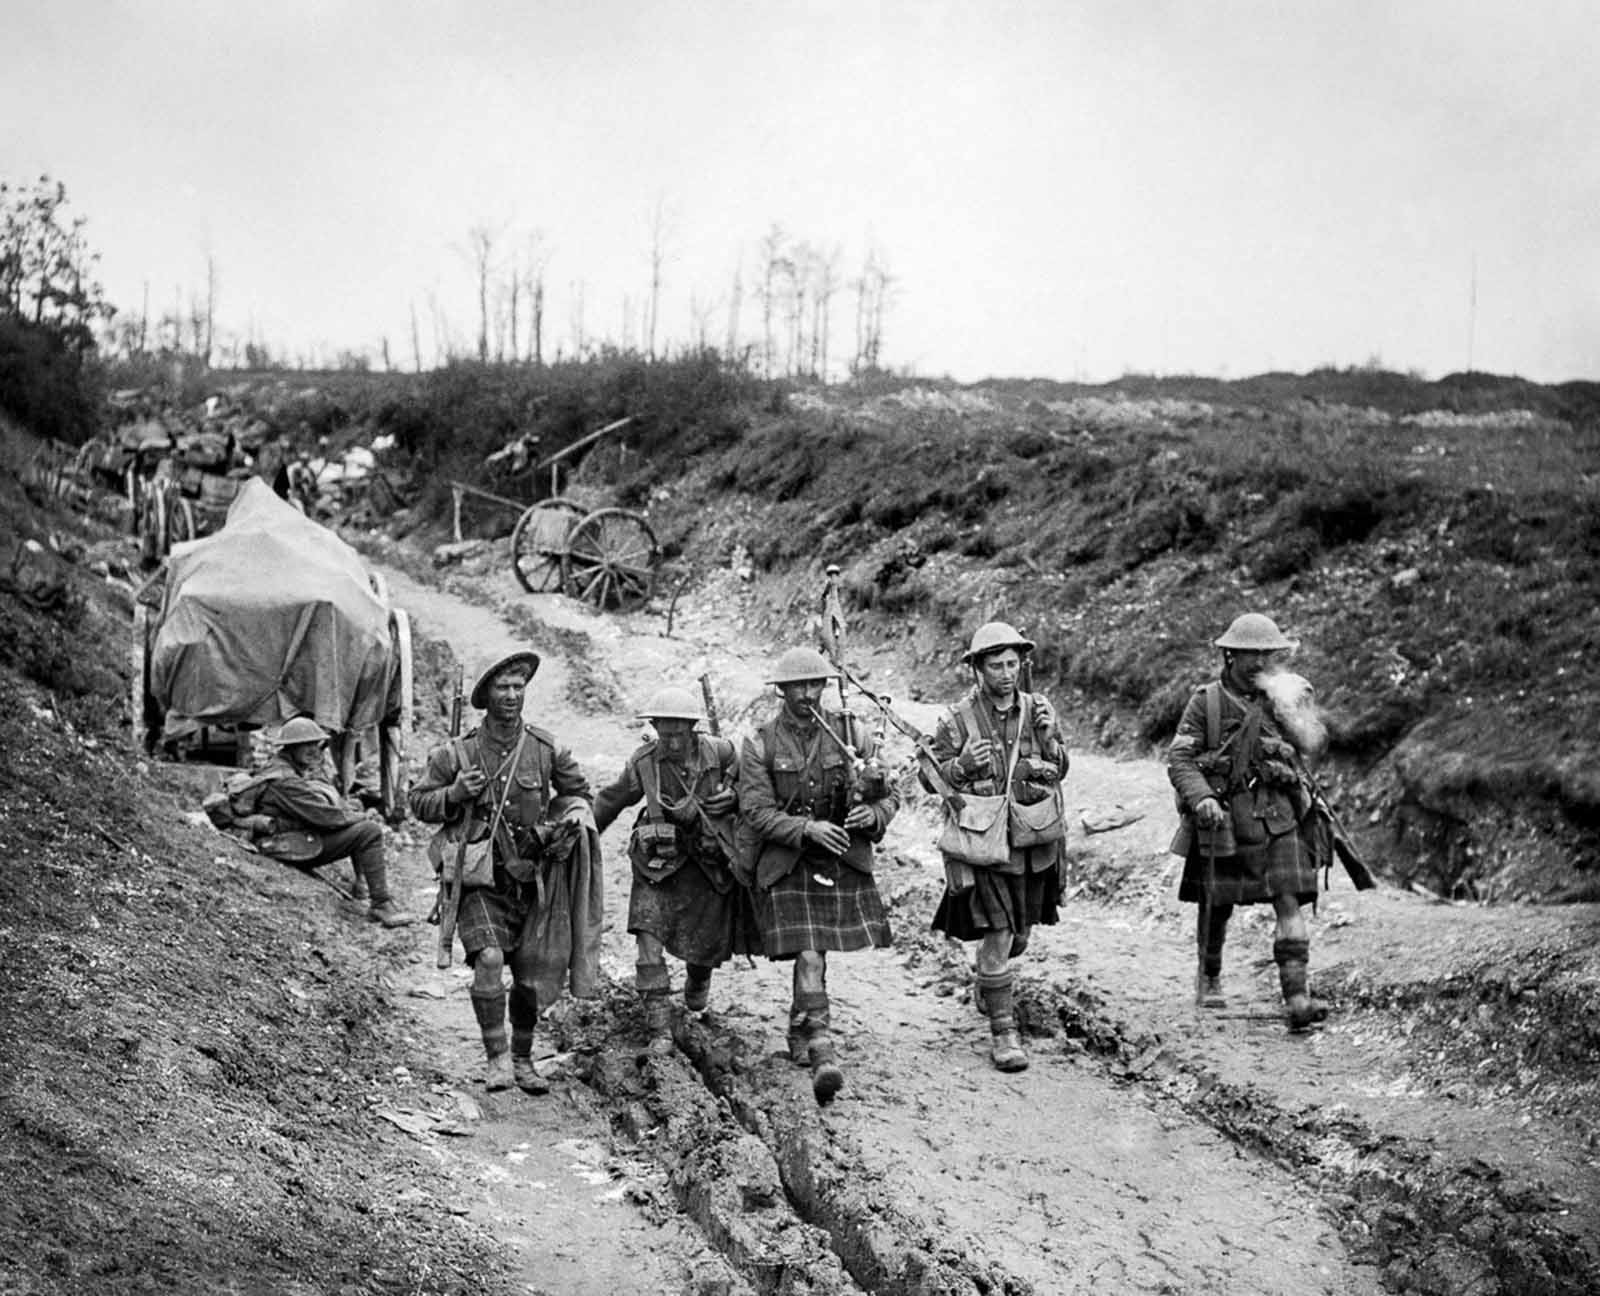 A piper of the 7th Seaforth Highlanders leads four men of the 26th Brigade back from the trenches after the attack on Longueval. July 14, 1916.